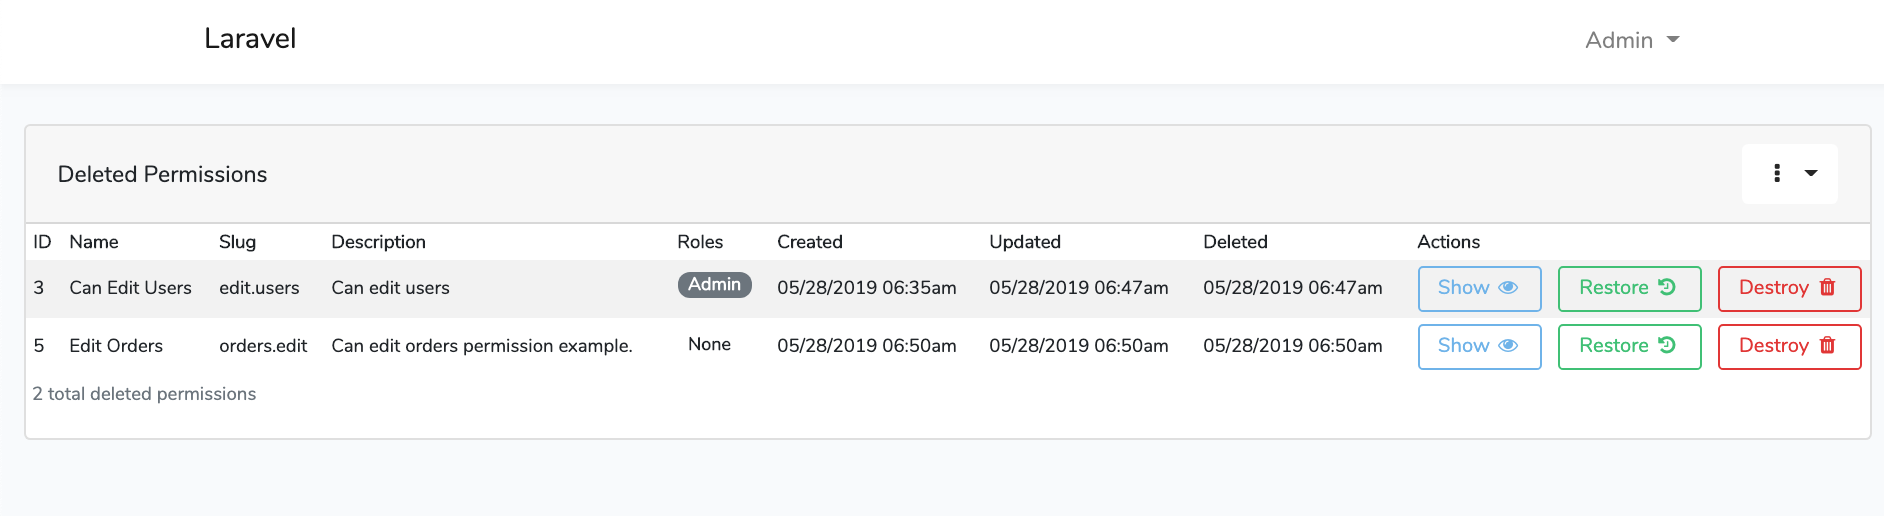 Laravel Roles GUI Roles Soft Deletes Dashboard